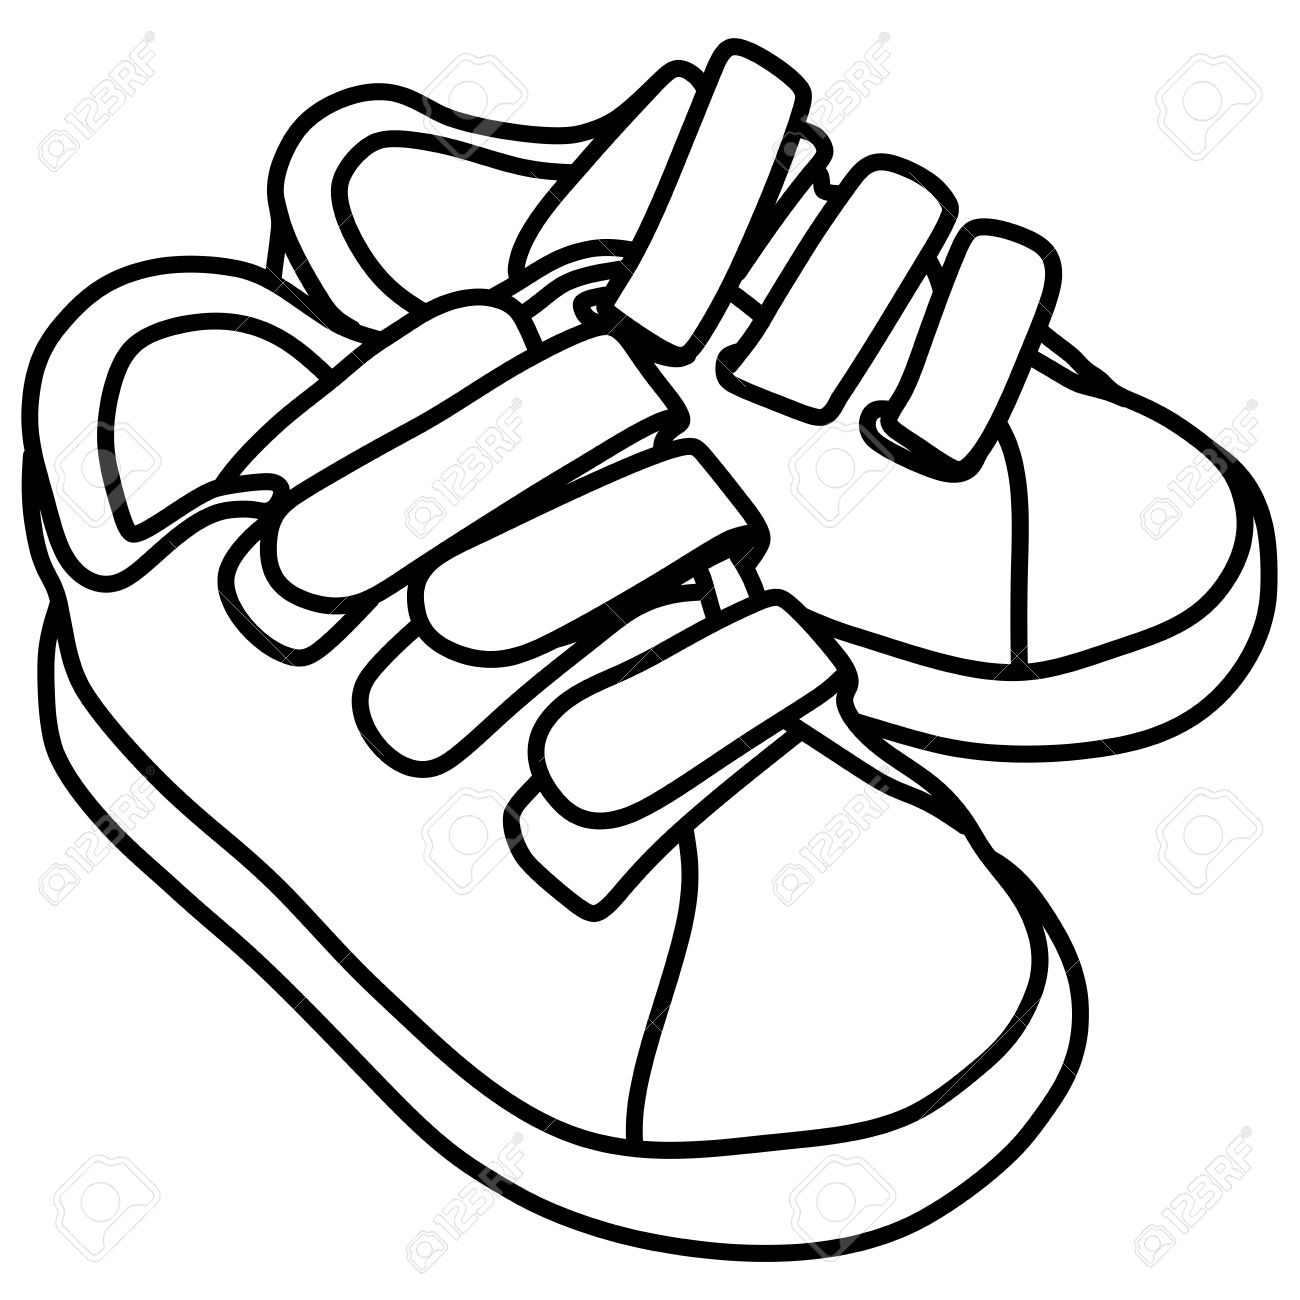 Black school shoes clipart free library School shoes clipart black and white 1 » Clipart Station free library